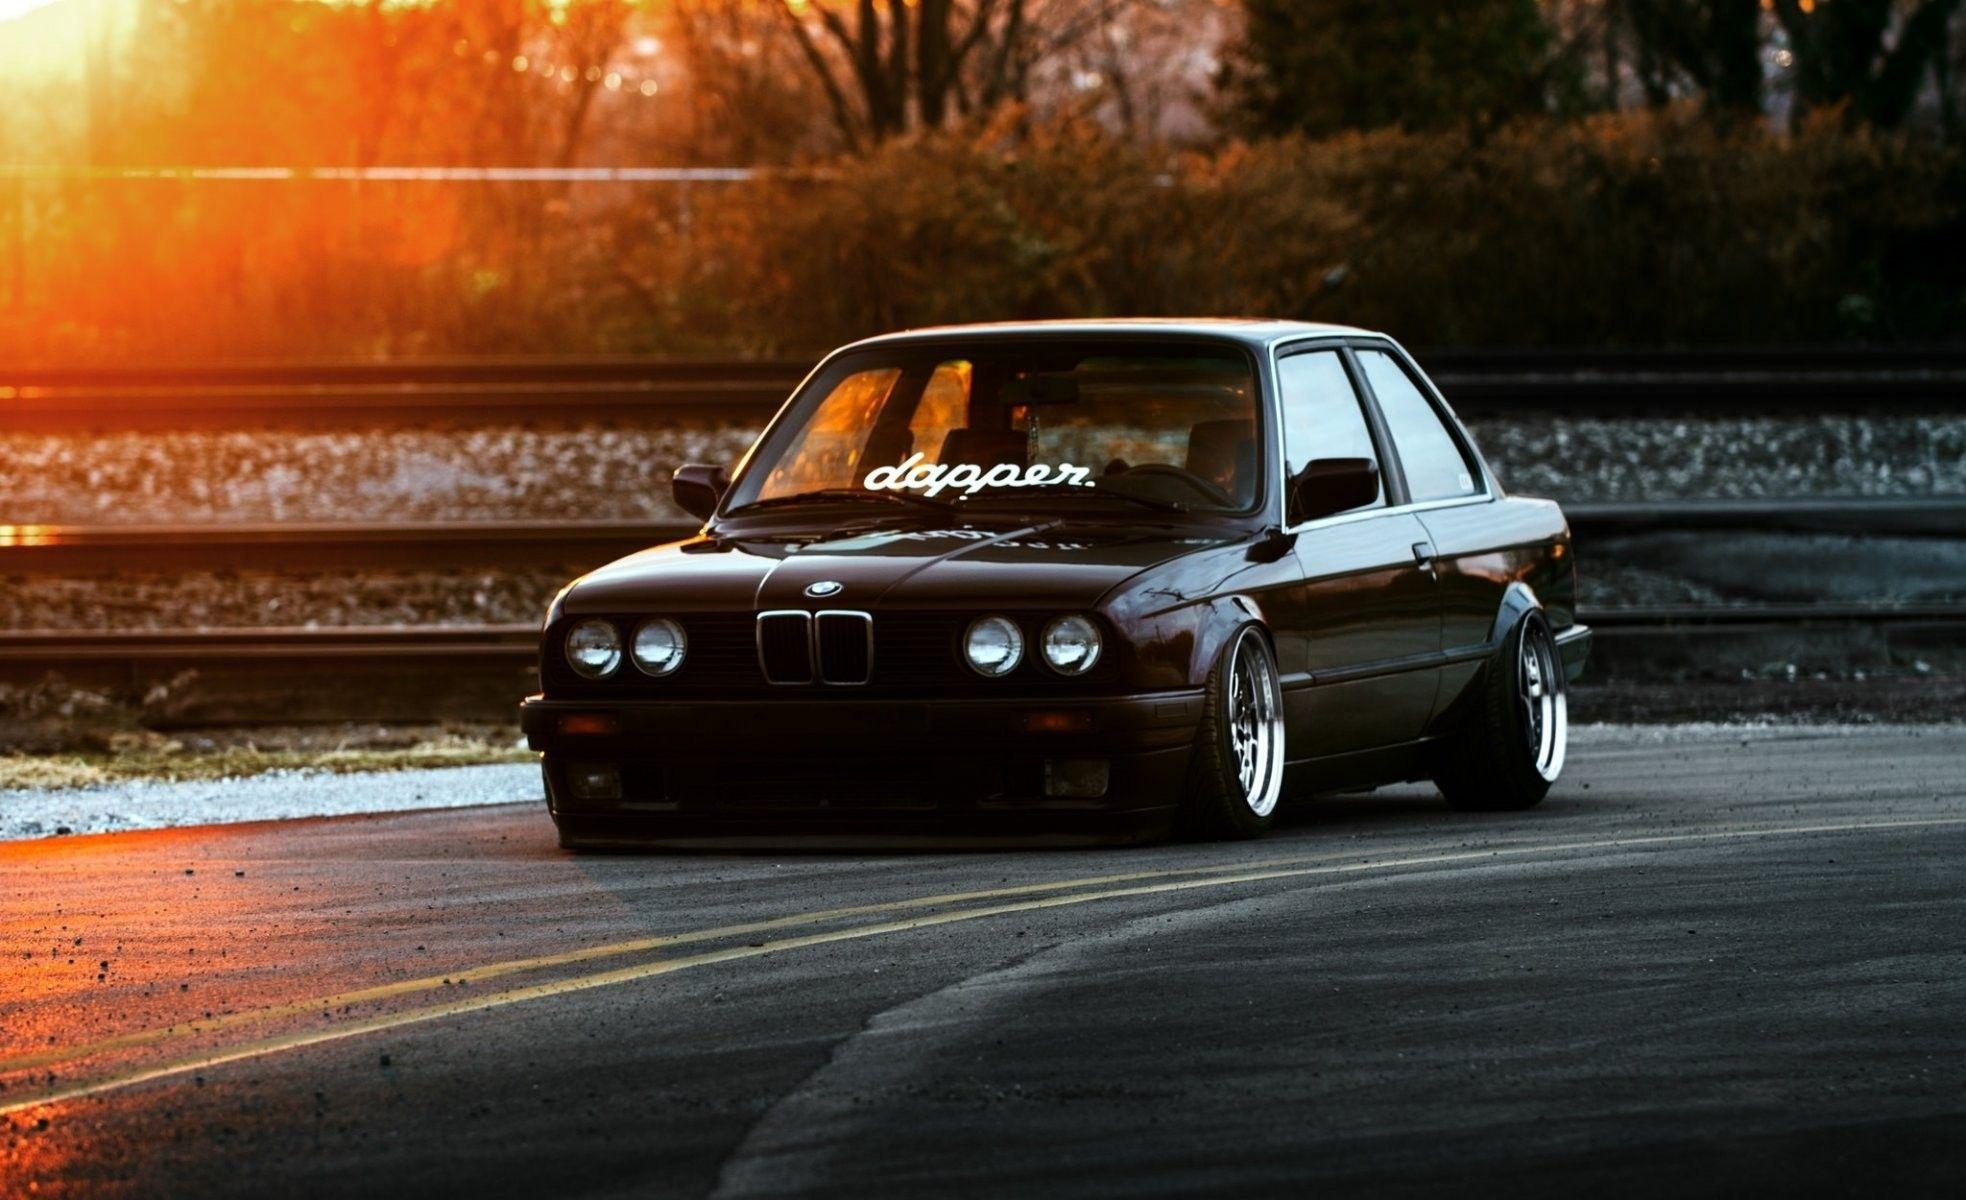 Bmw E30 Tuning Wallpapers Wallpaper Cave